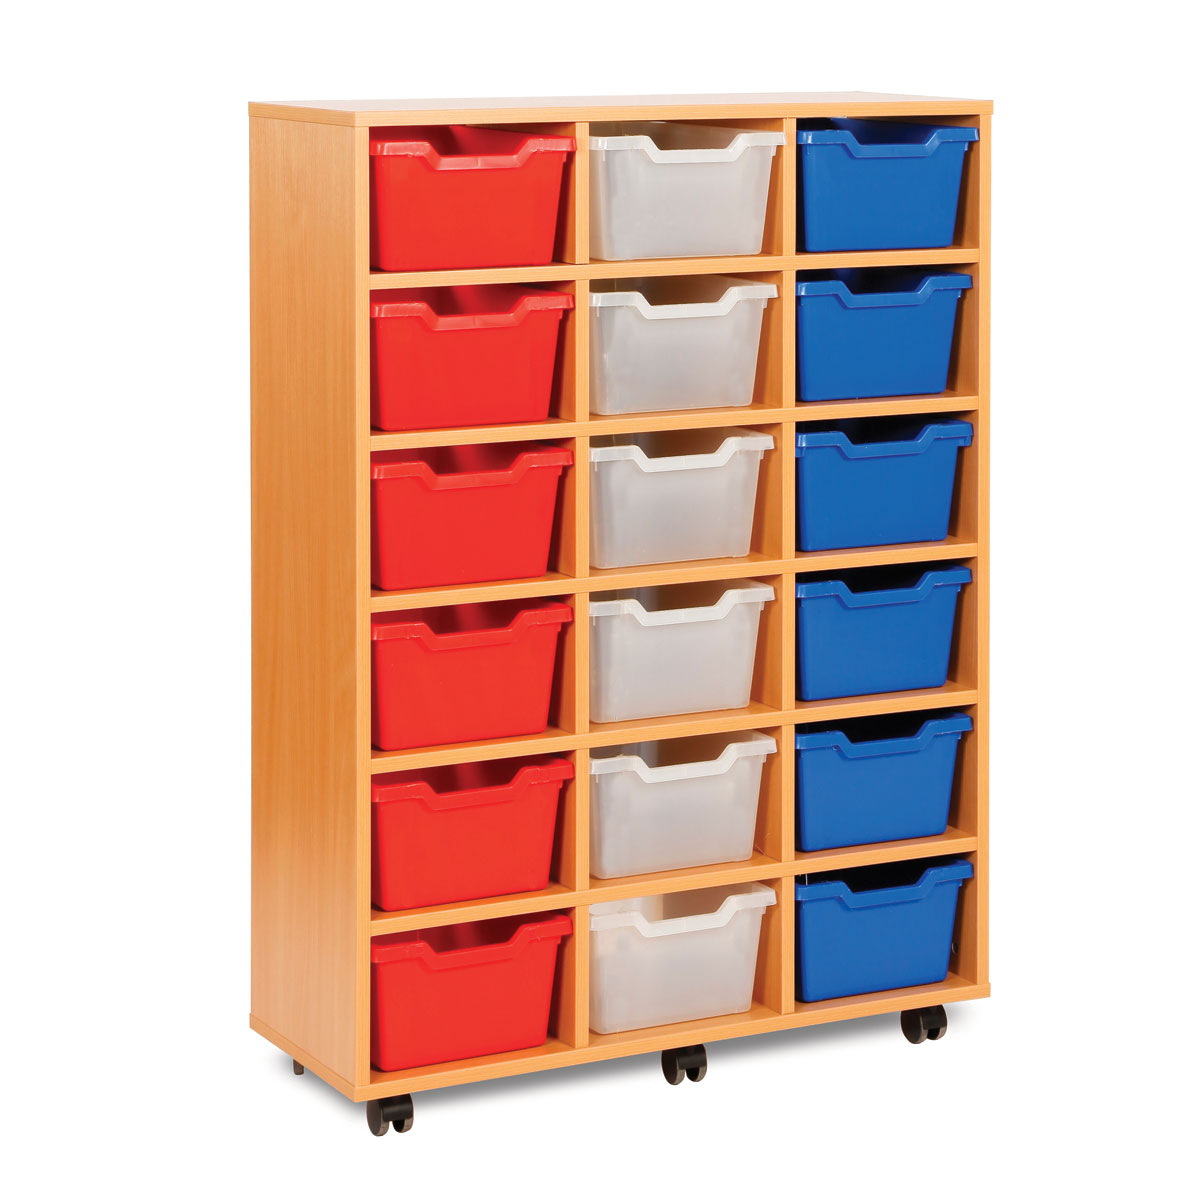 buy 18 cubby tray storage unit primary ict shop for primary schools early years secondary. Black Bedroom Furniture Sets. Home Design Ideas